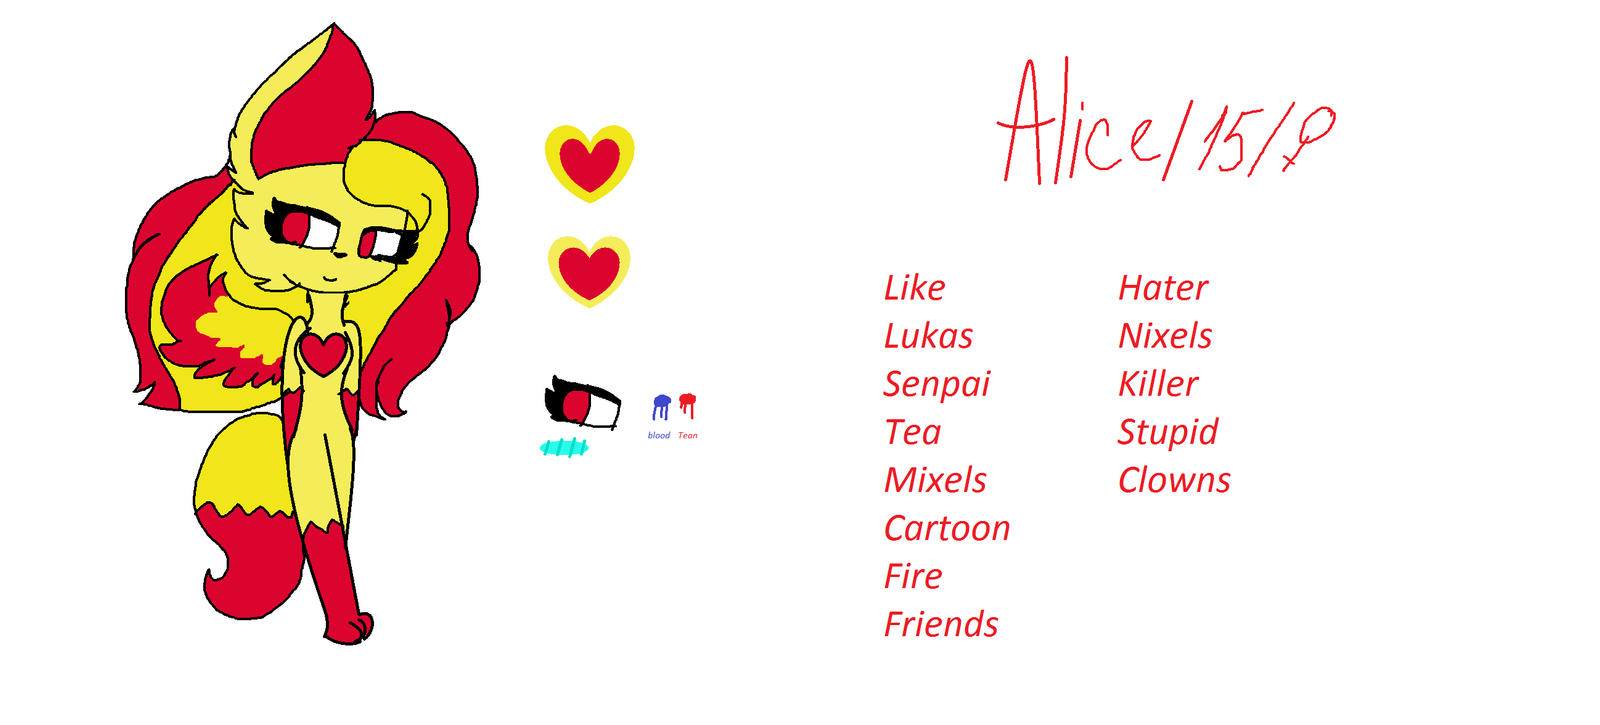 Alice Fire by astya45